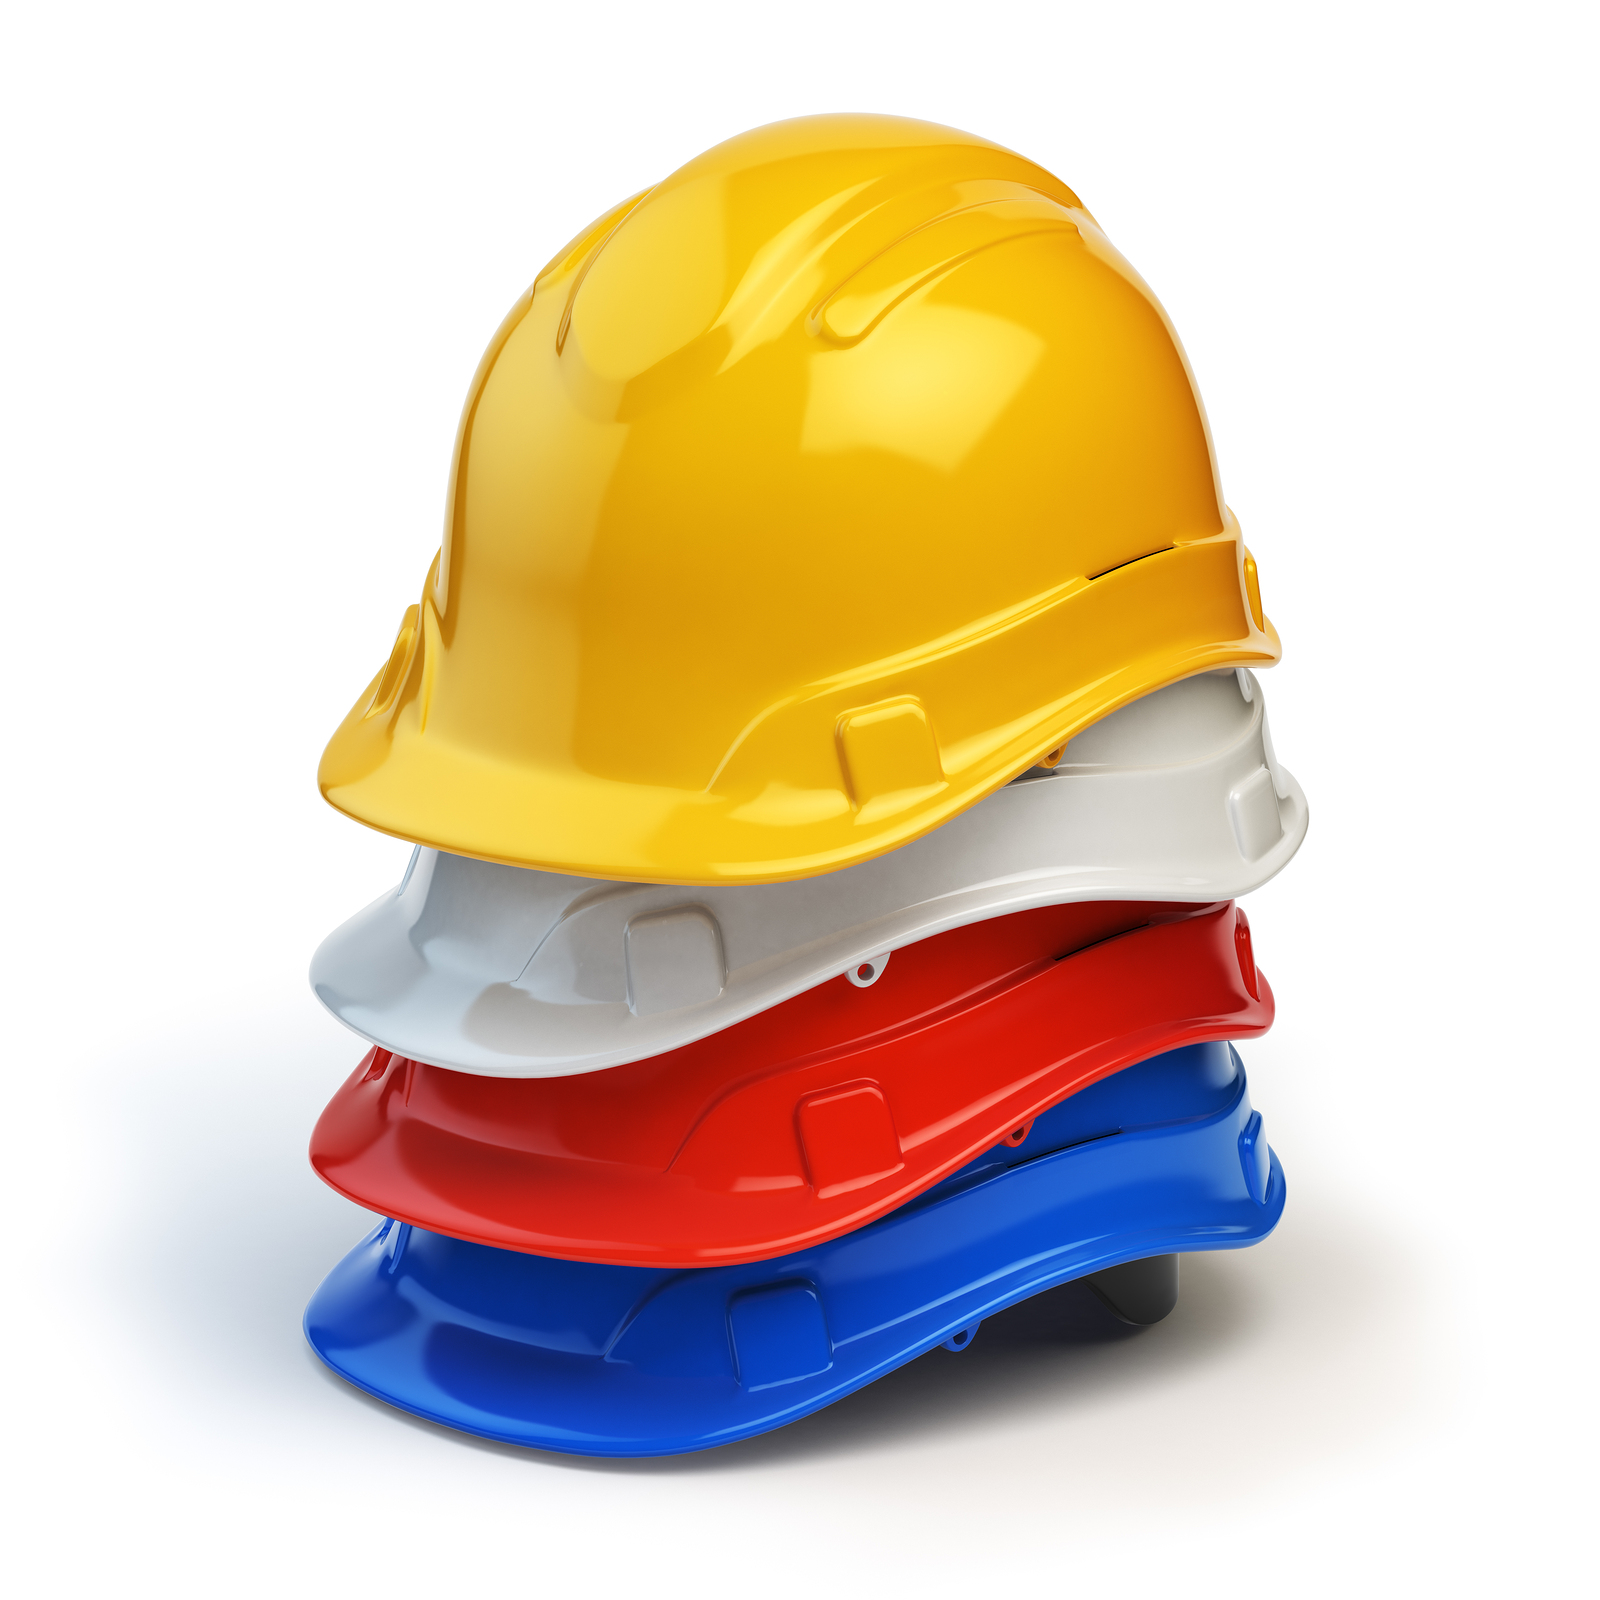 We offer a vast selection of personal protective equipment and safety products